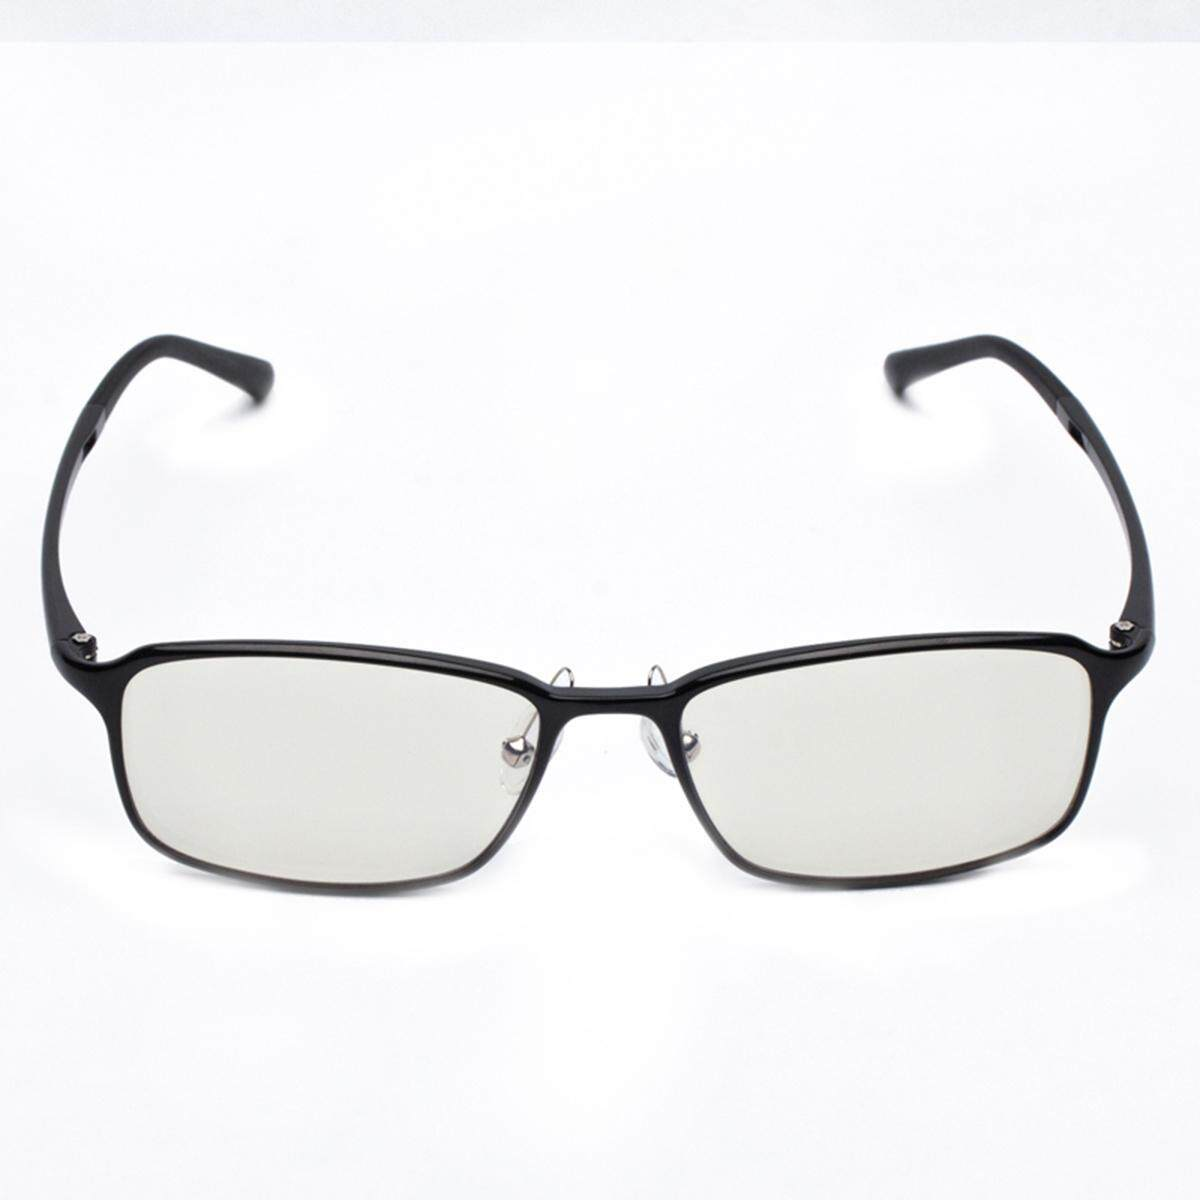 Xiaomi Mijia TS Anti-Blue Light Glasses Anti-Fatigue Eye Protector Glasses